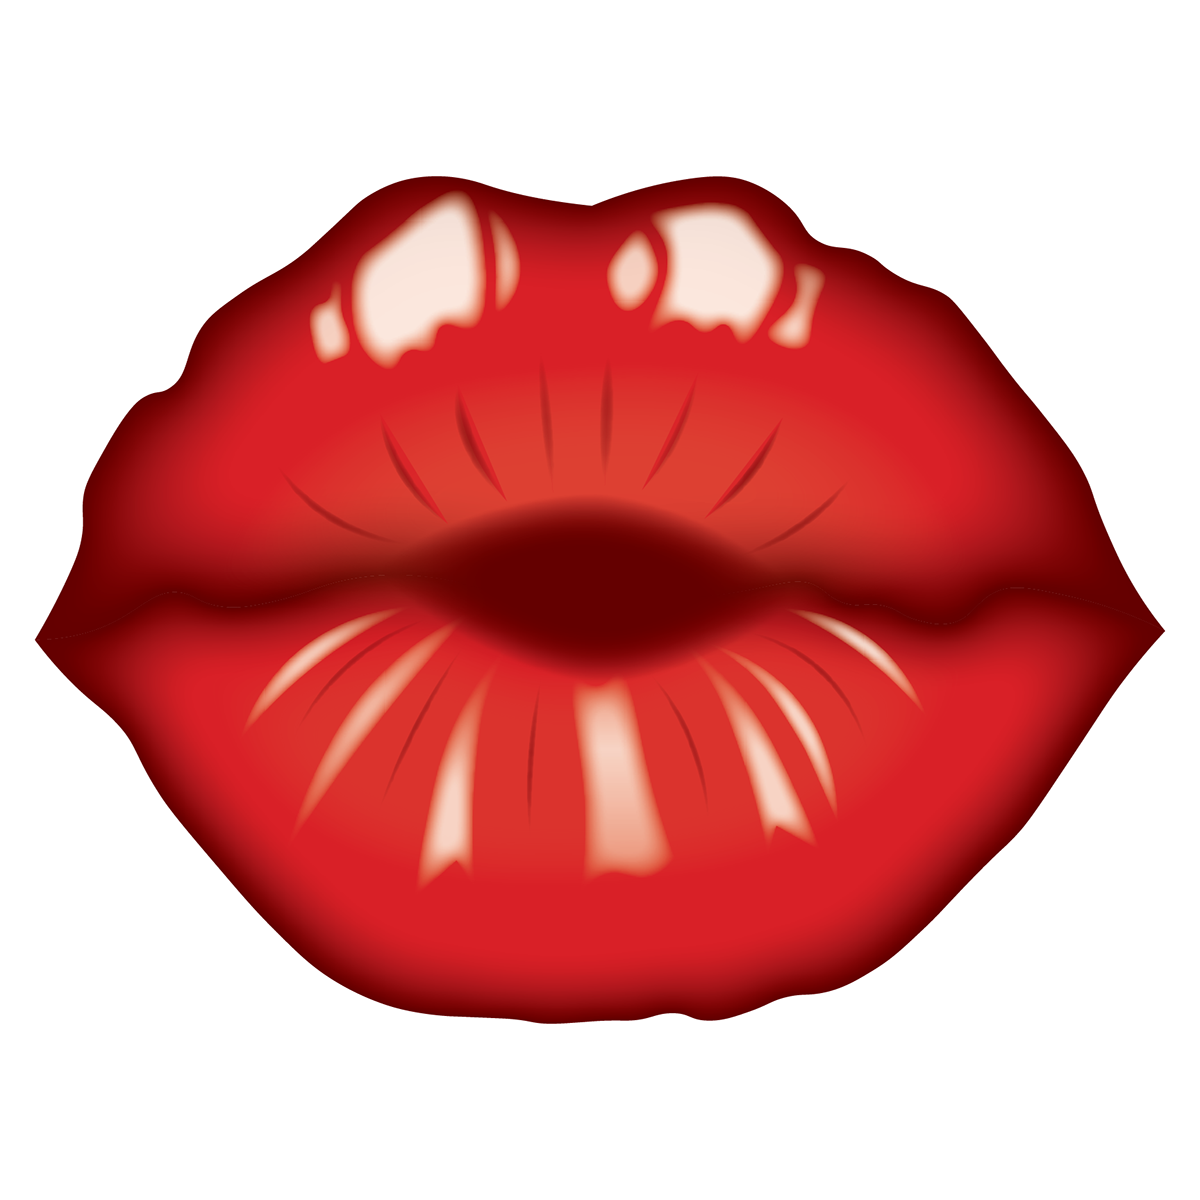 Kiss clipart smooch. Lips project on behance